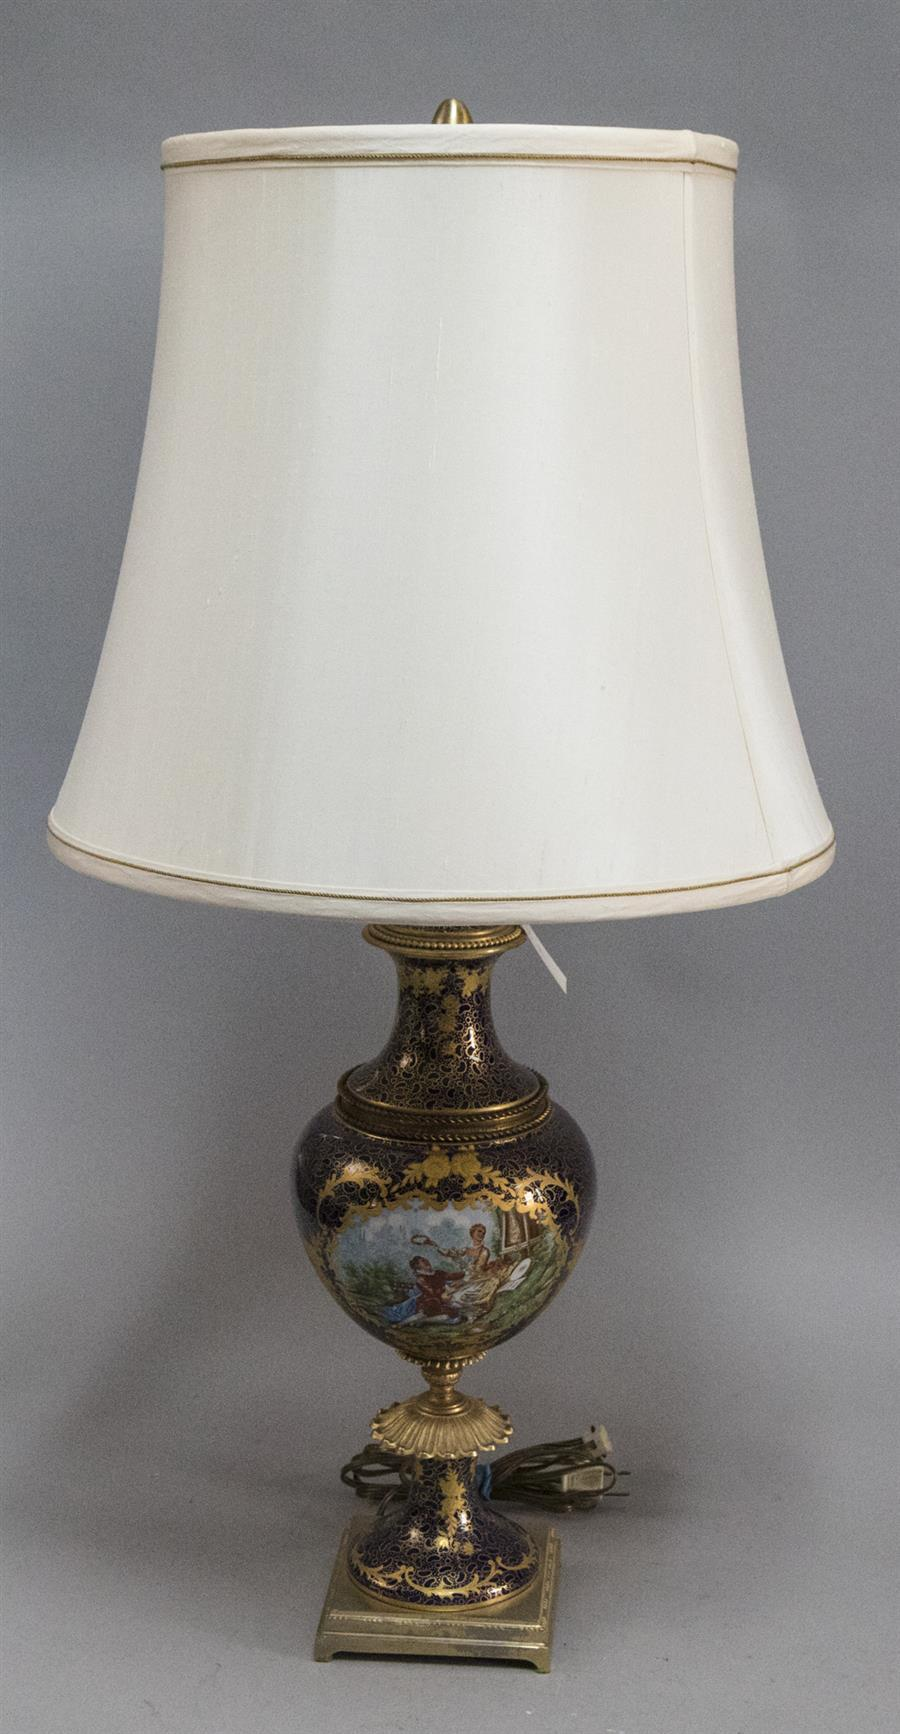 French porcelain and brass table lamp with silk shade